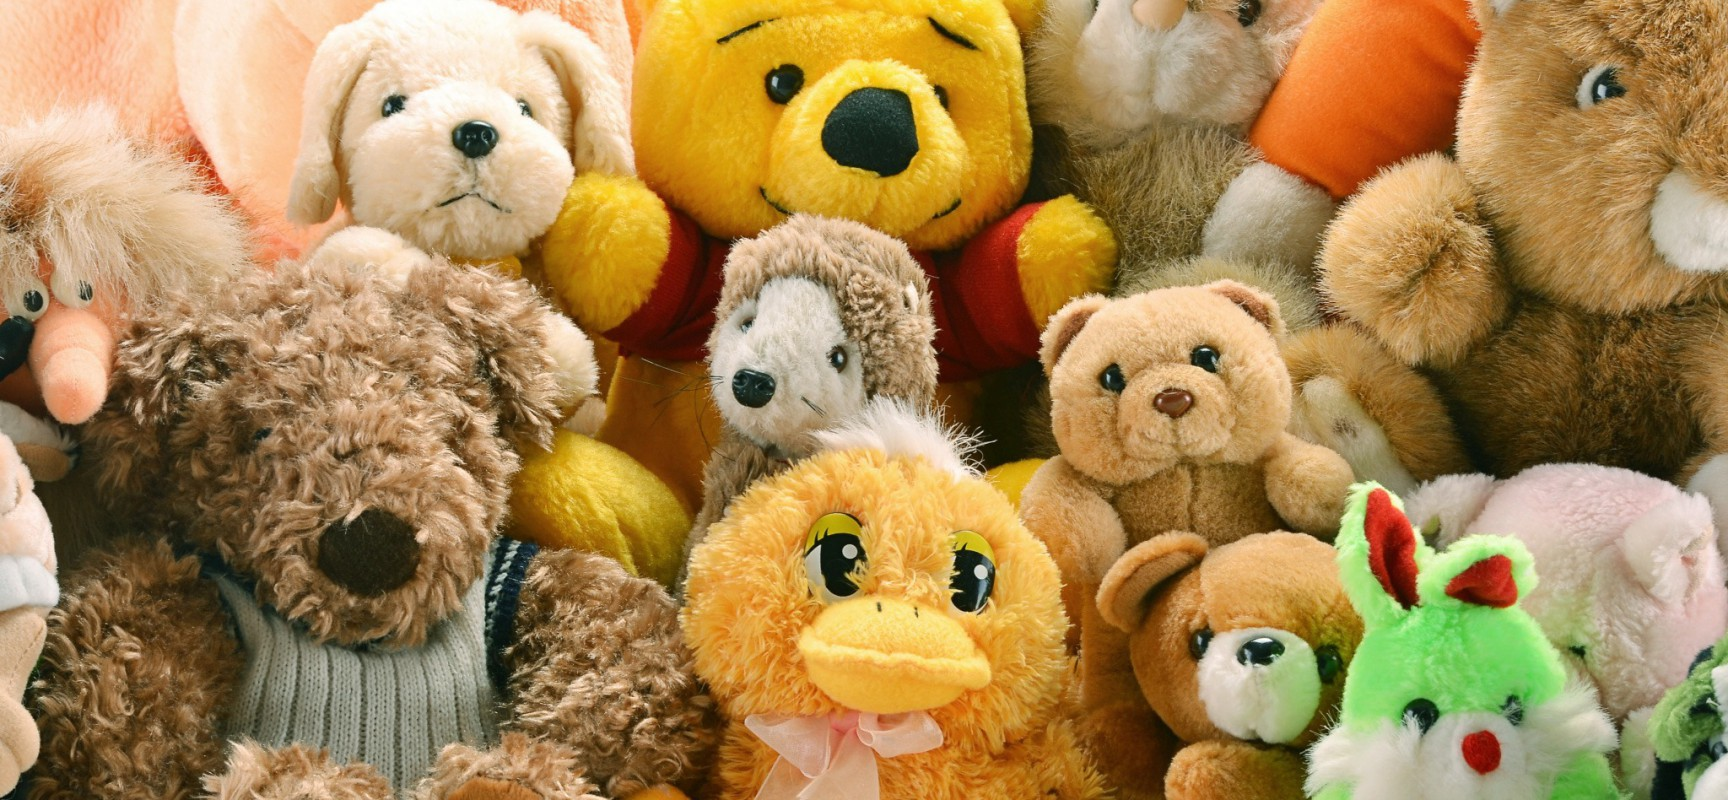 Cute Teddy Bears Wallpapers Hd Saving Or Harming The Planet With Plush Toys Fur